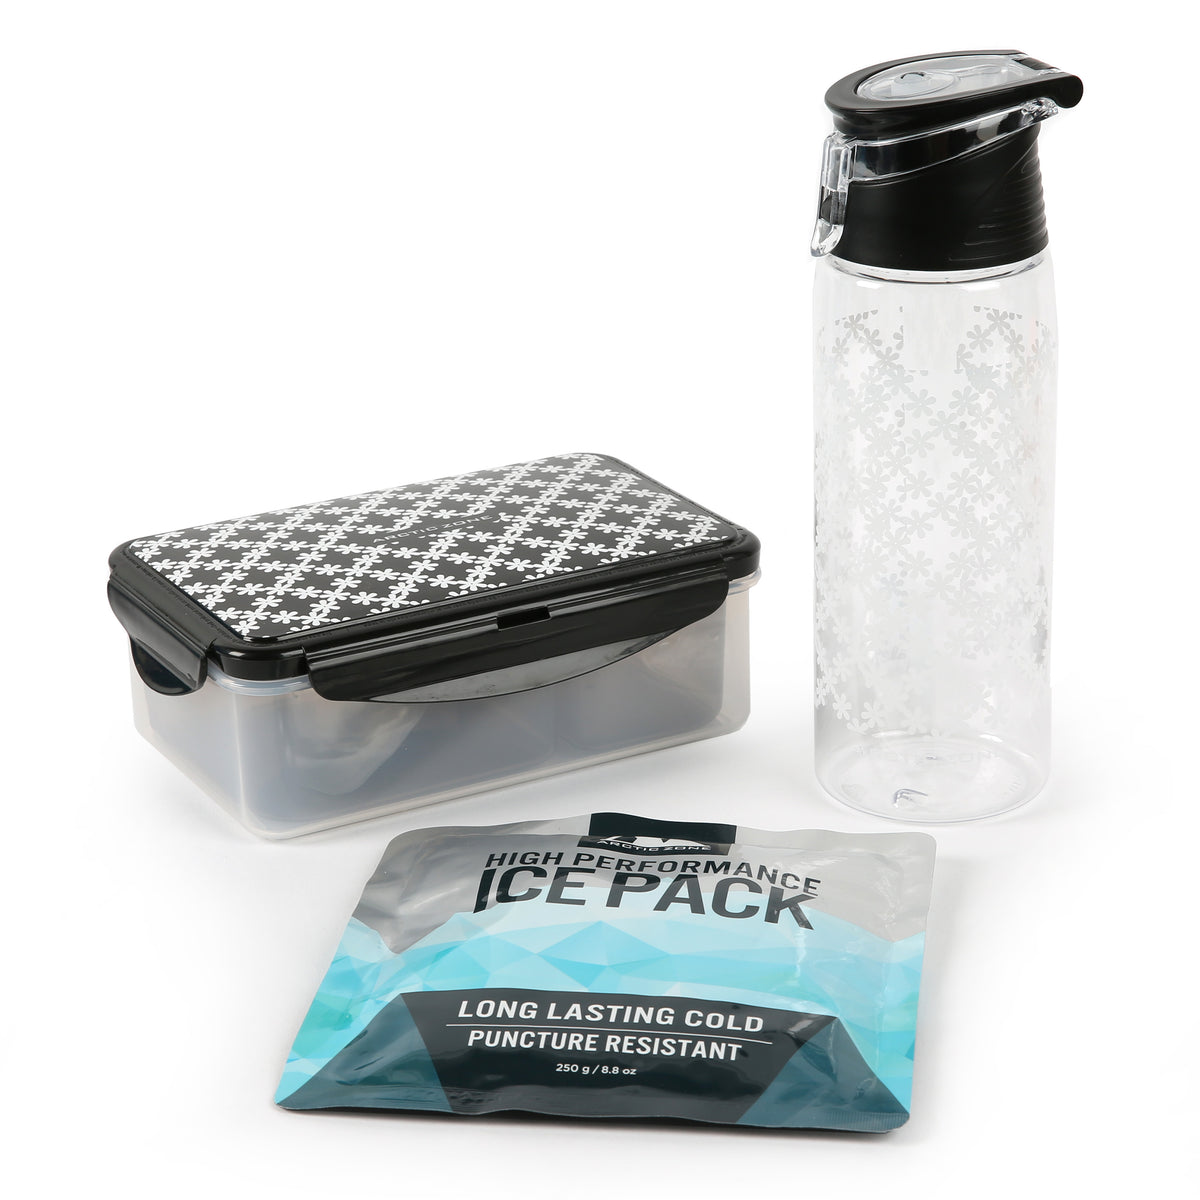 Arctic Zone® Commuter Tote - Mixed Stripes - Ice pack, water bottle and containers